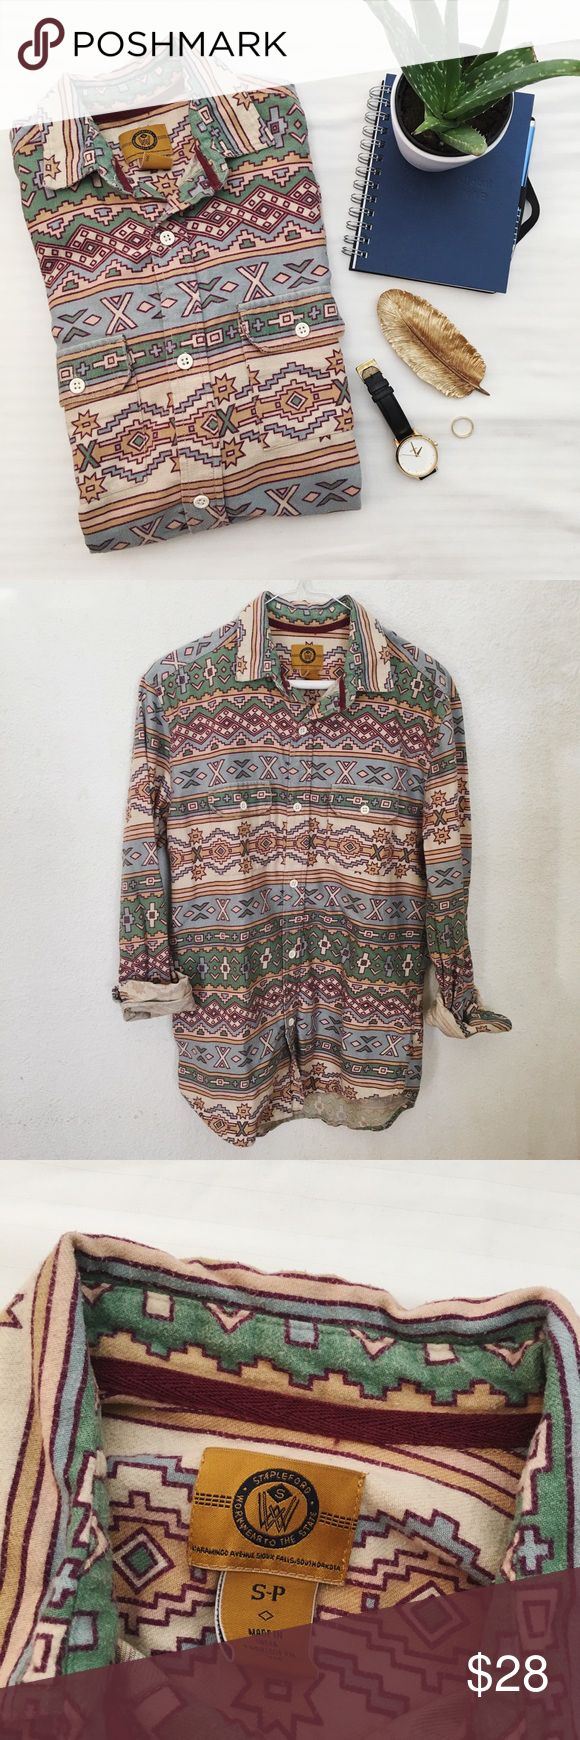 Tribal Print Longsleeves Urban Outfitters Tribal button up long sleeves Size: S (Men) Used; no sign of wear  Other items NOT included !!  All sales are final. NO return/ exchange  #uo #urbanoutfitters #me  #longsleeves #mensmall #tribalprint #menlongsleeveshirt Urban Outfitters Shirts Casual Button Down Shirts